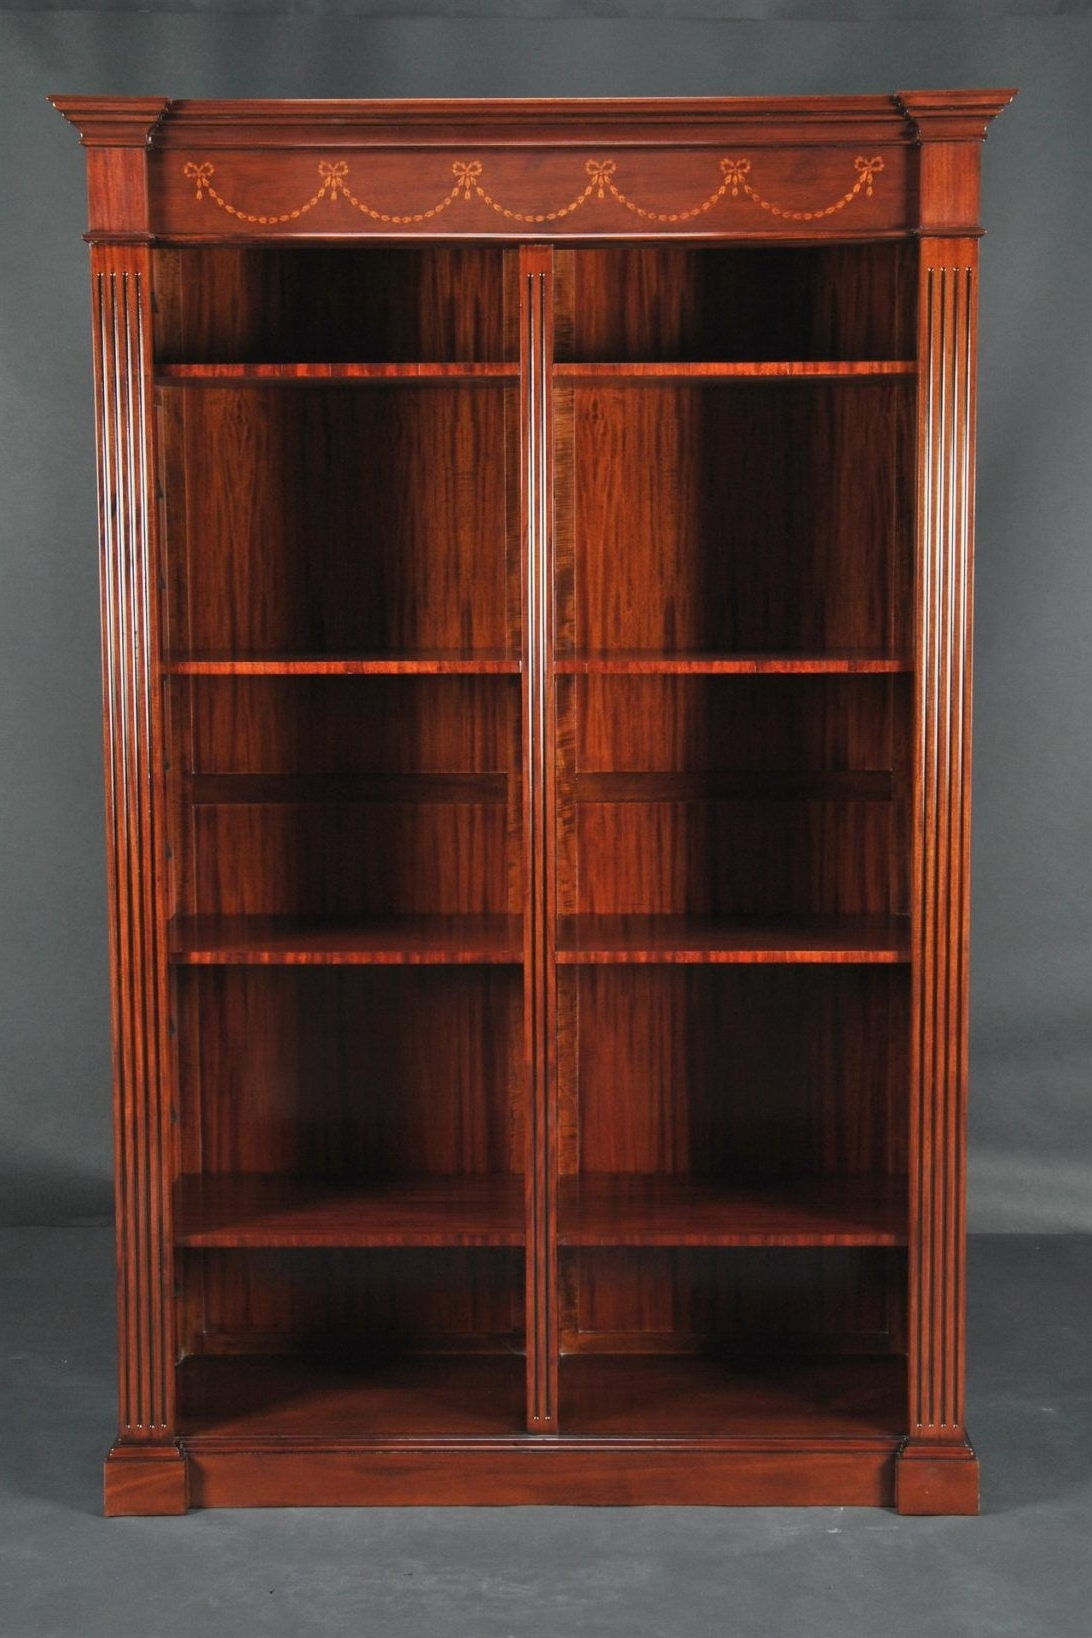 Popular Mahogany Bookcases Intended For Antique Mahogany China Cabinet And Bookcase Bookcases Online From (View 8 of 15)